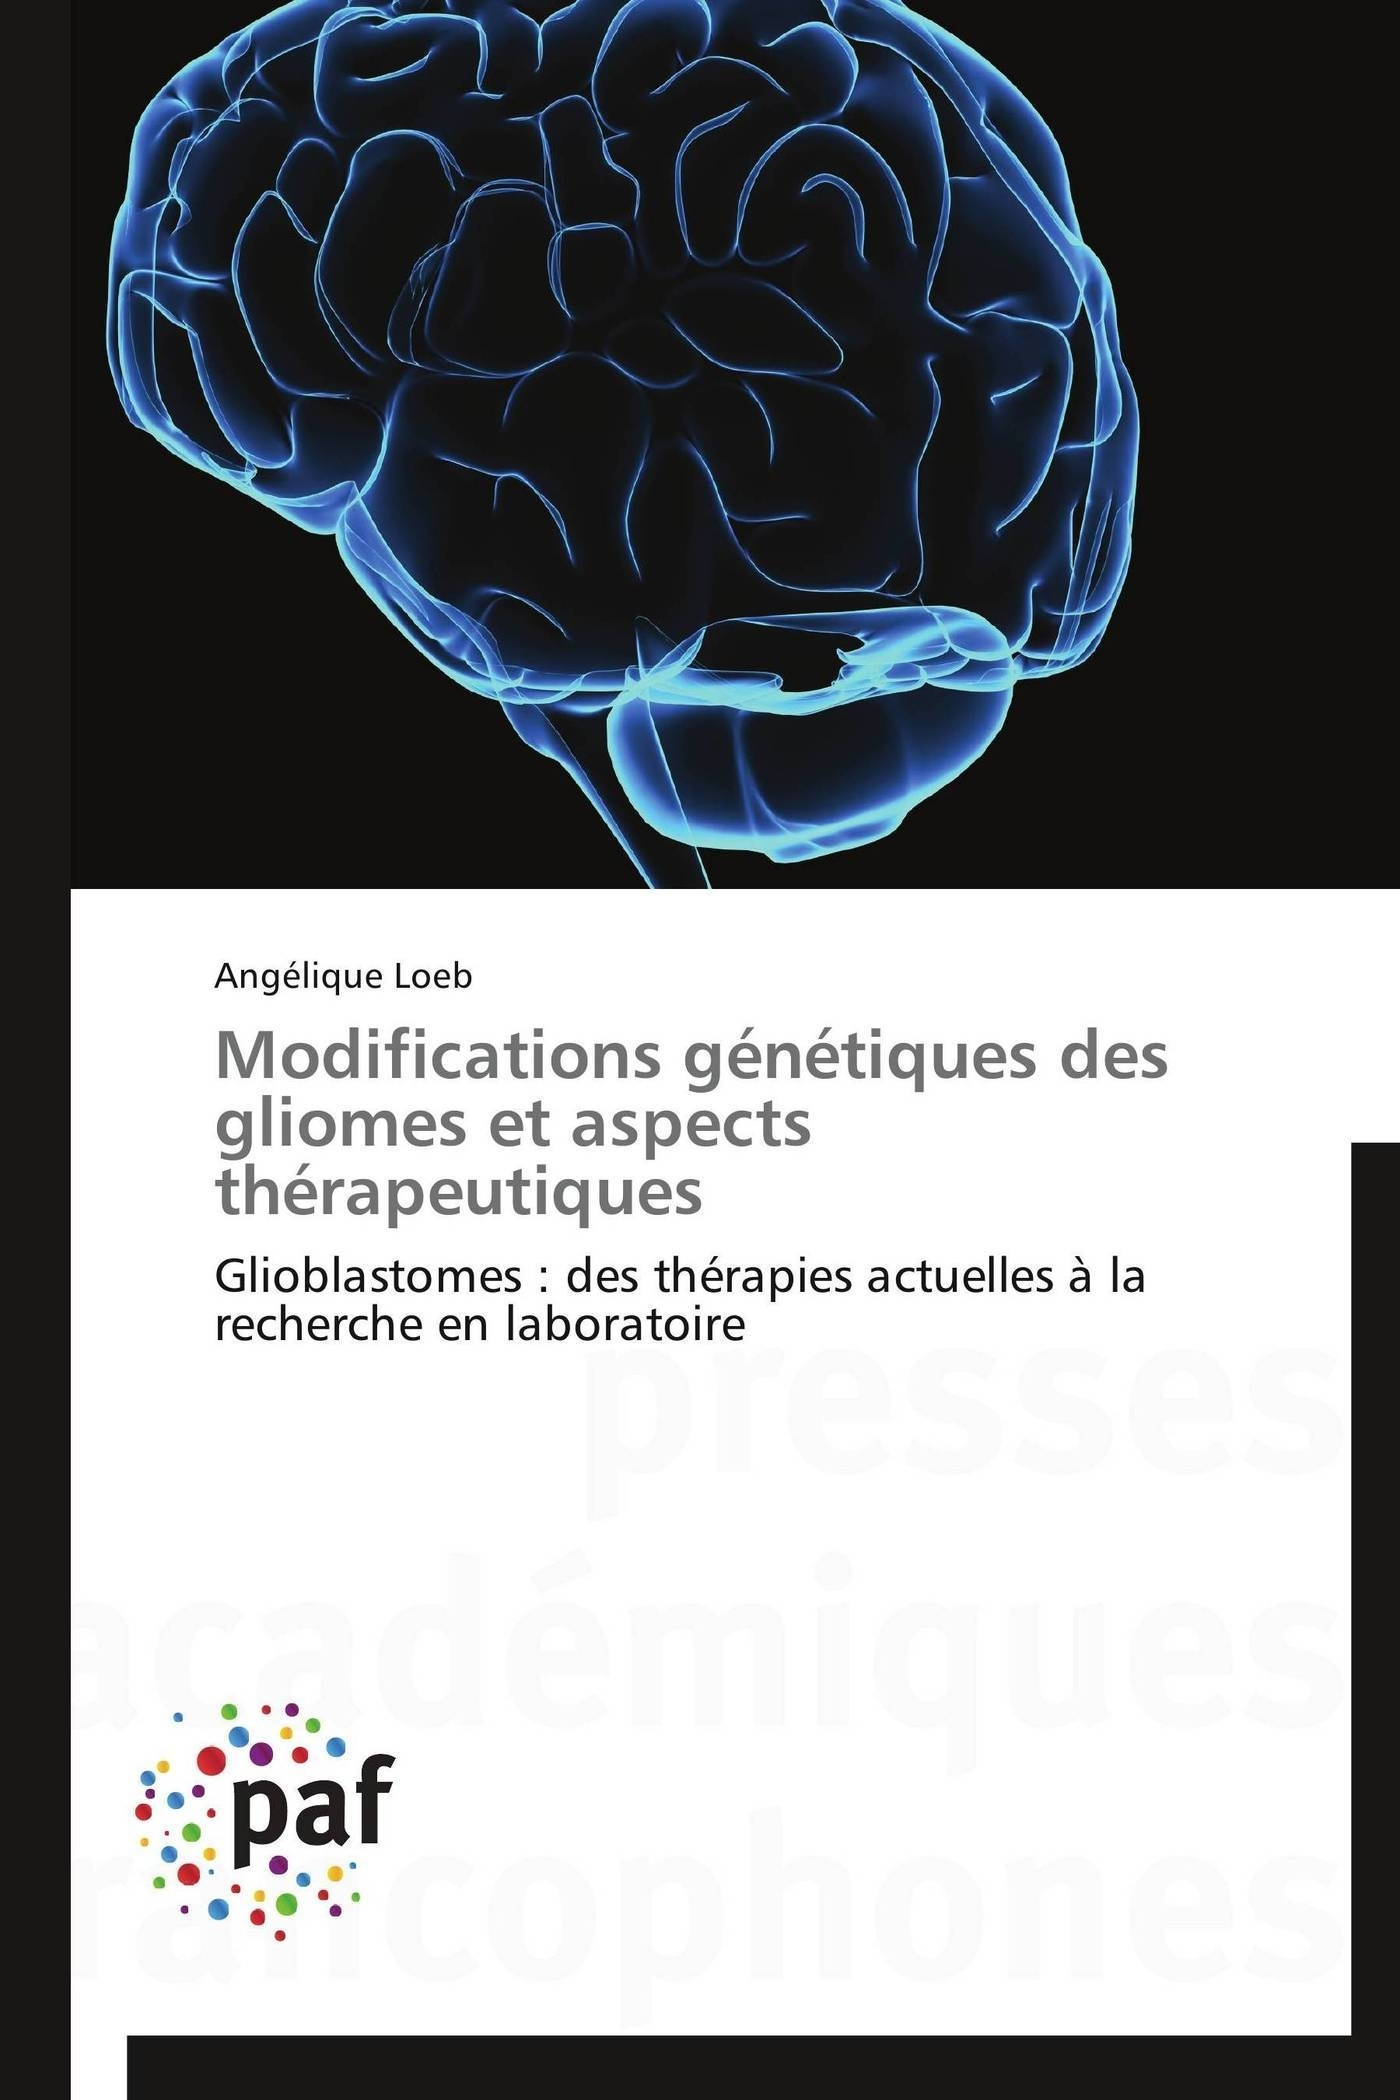 MODIFICATIONS GENETIQUES DES GLIOMES ET ASPECTS THERAPEUTIQUES